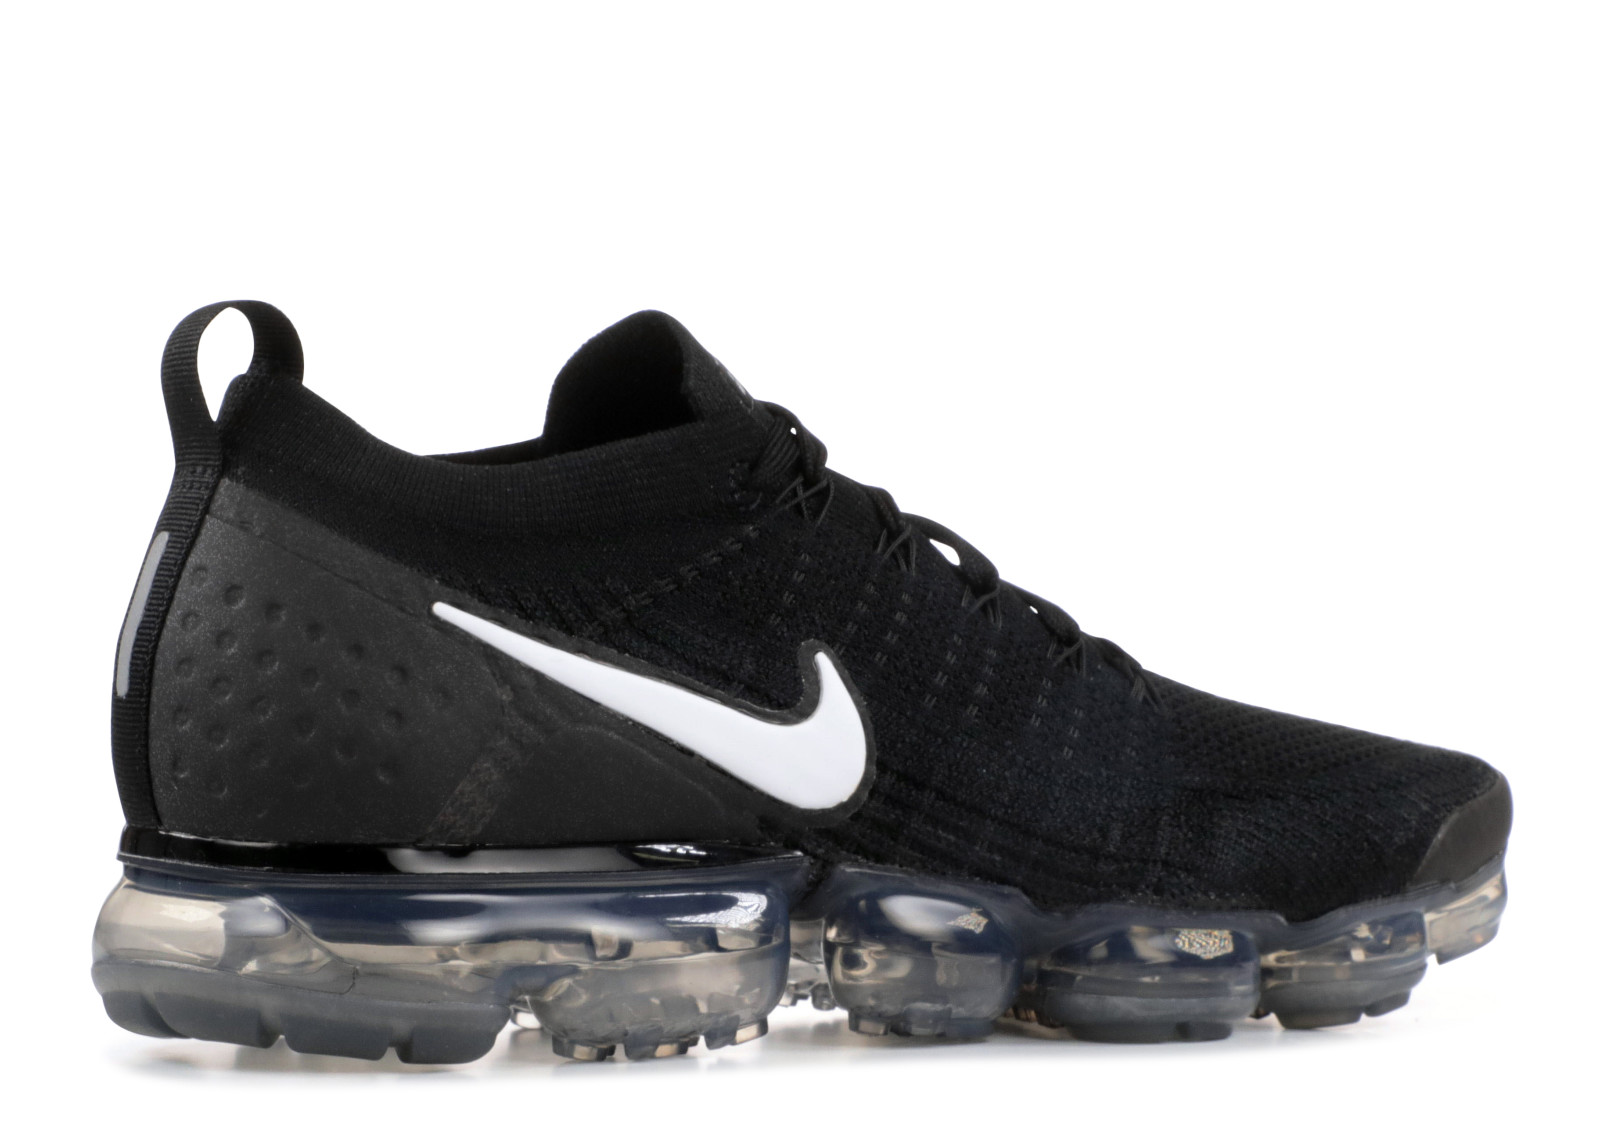 promo code 5ed9e f9534 Nike Air Vapormax Flyknit 2 Black-White-Dark Grey